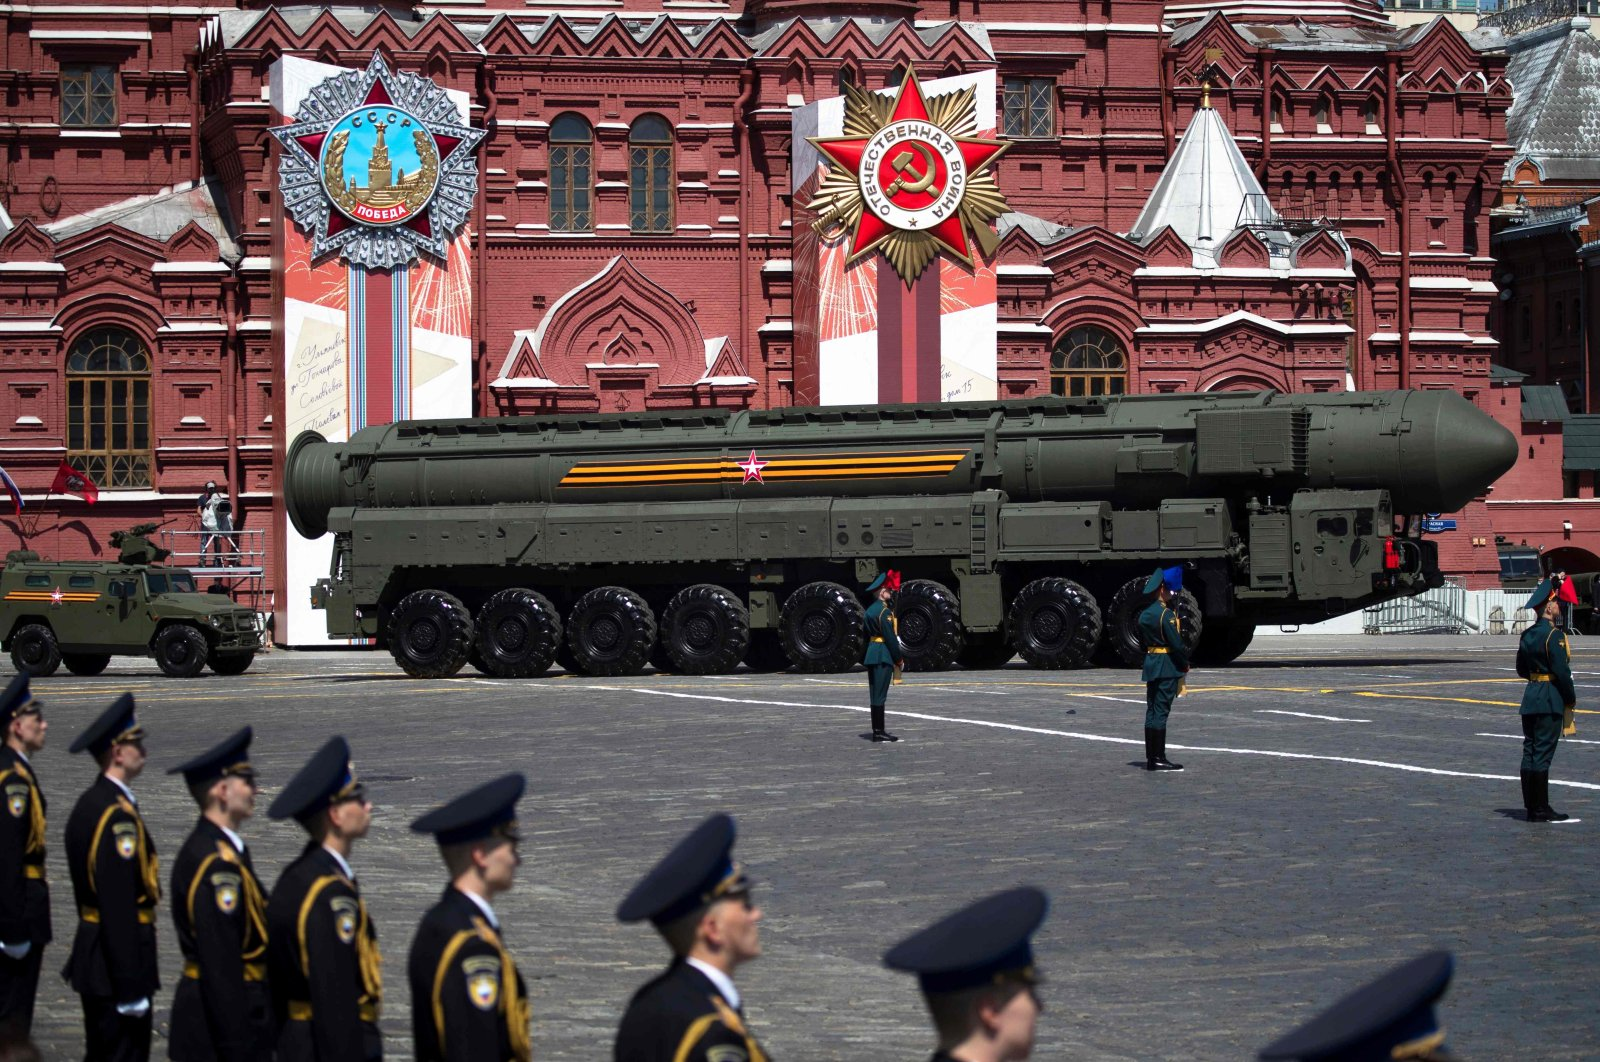 Russian army RS-24 Yars ballistic missile system moves through Red Square during a military parade, which marks the 75th anniversary of the Soviet victory over Nazi Germany in World War II, in Moscow on June 24, 2020. (AFP Photo)